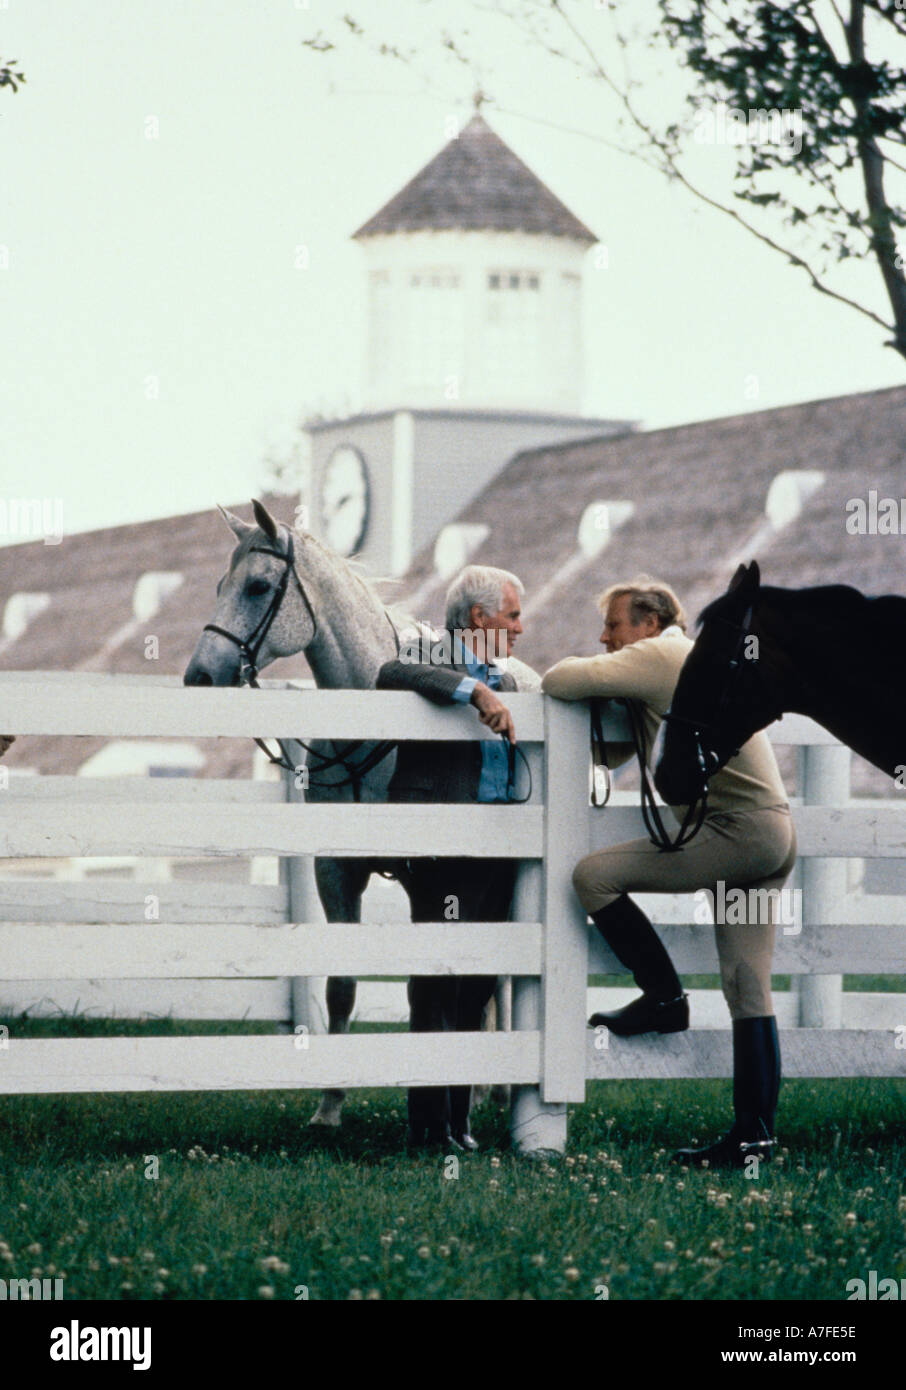 Two men with horses talking over a white fence - Stock Image